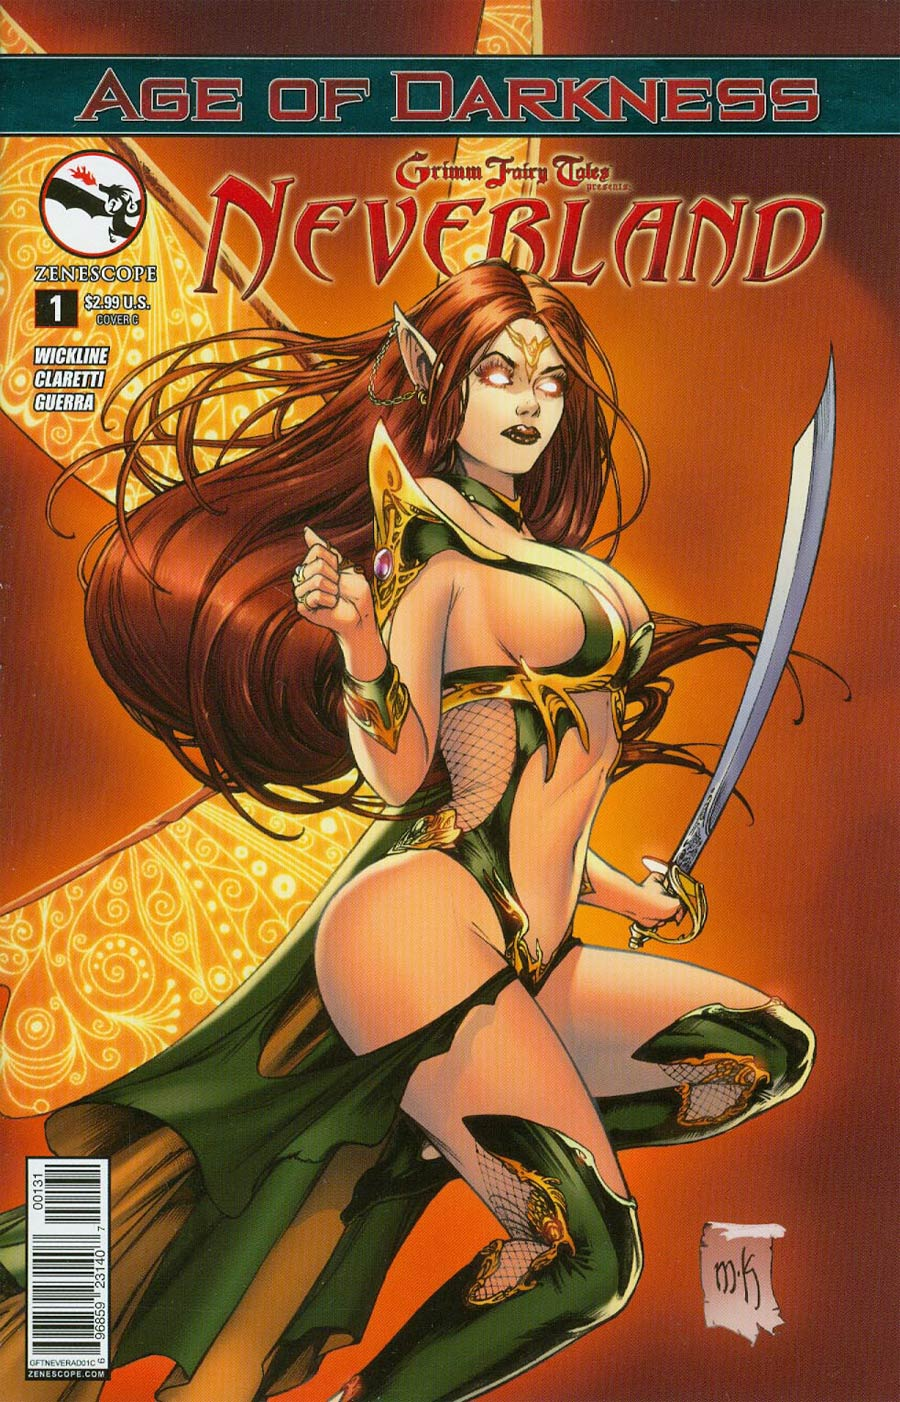 Grimm Fairy Tales Presents Neverland Age Of Darkness #1 Cover C Mike Krome (Age Of Darkness Tie-In)